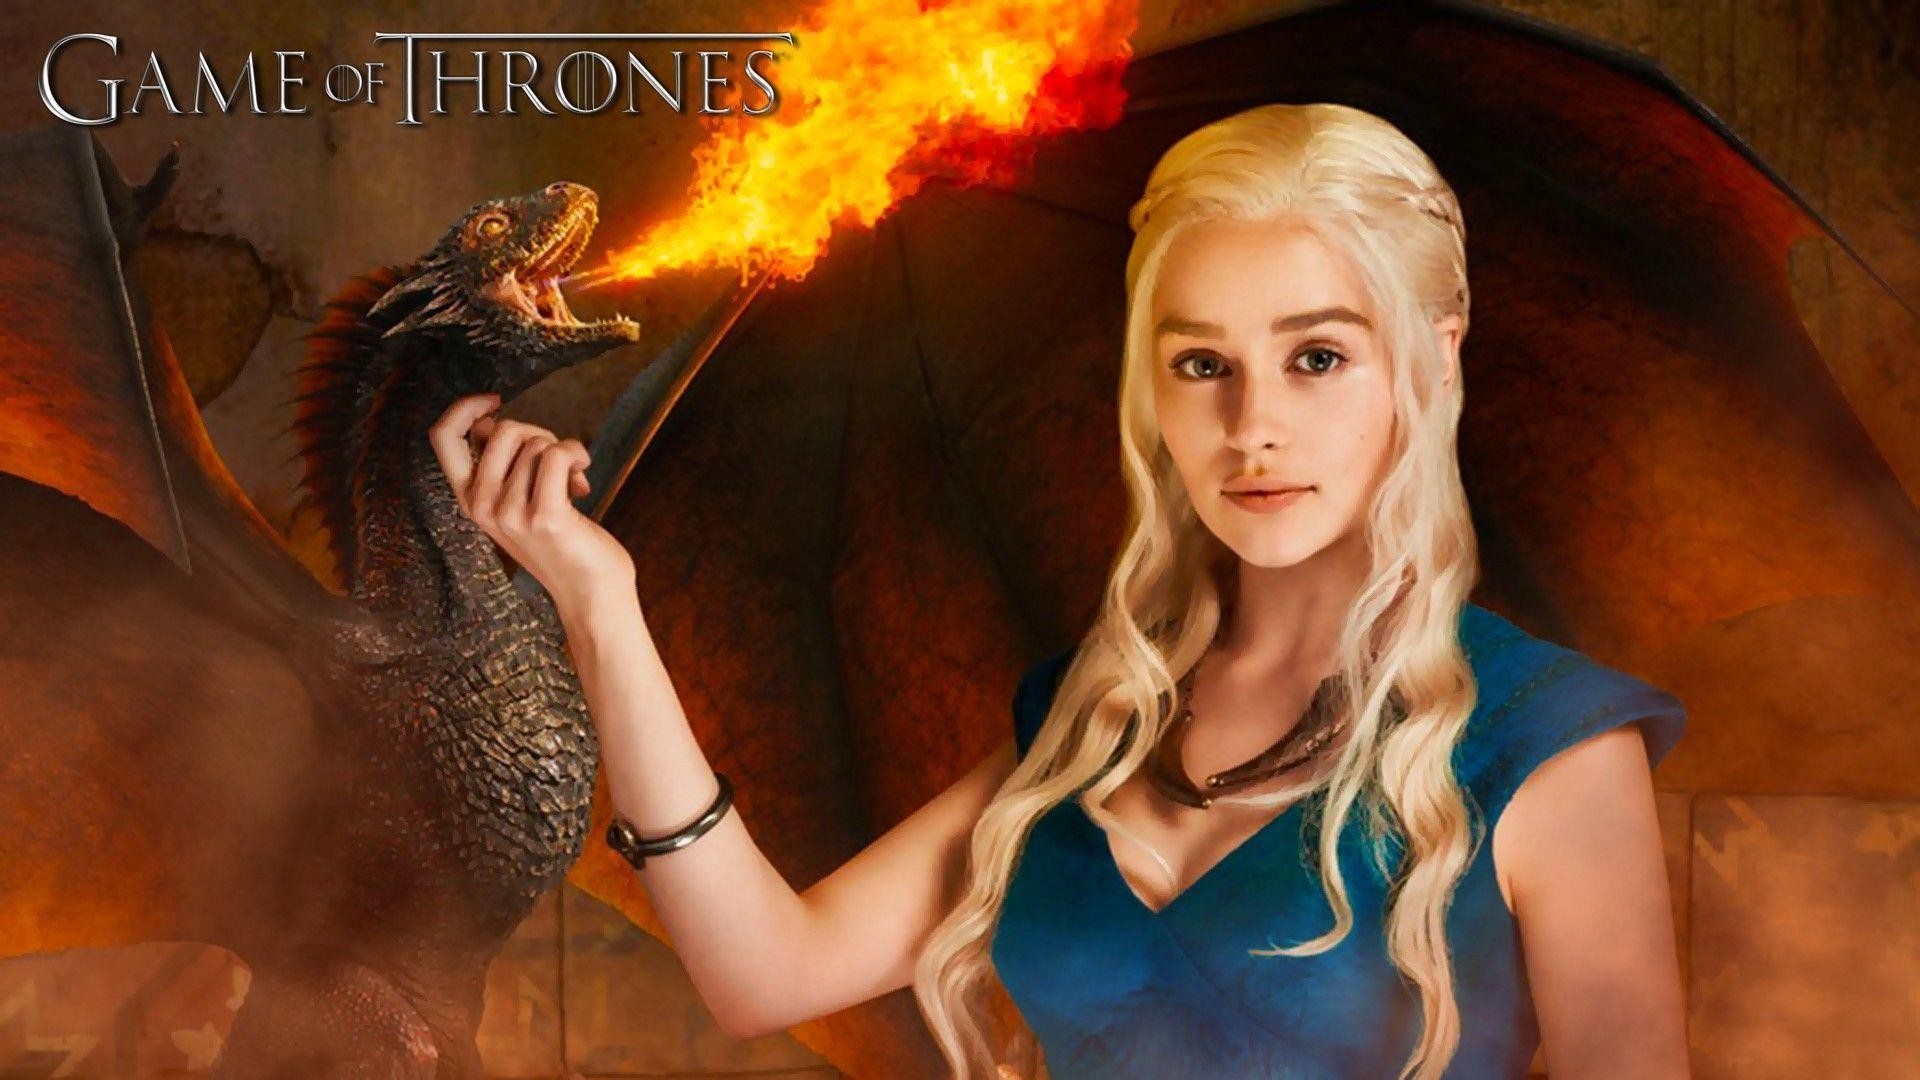 Emilia Clarke Game Of Thrones Wallpapers, 46 Pc Emilia - Game Of Thrones Daenerys With Dragons - HD Wallpaper